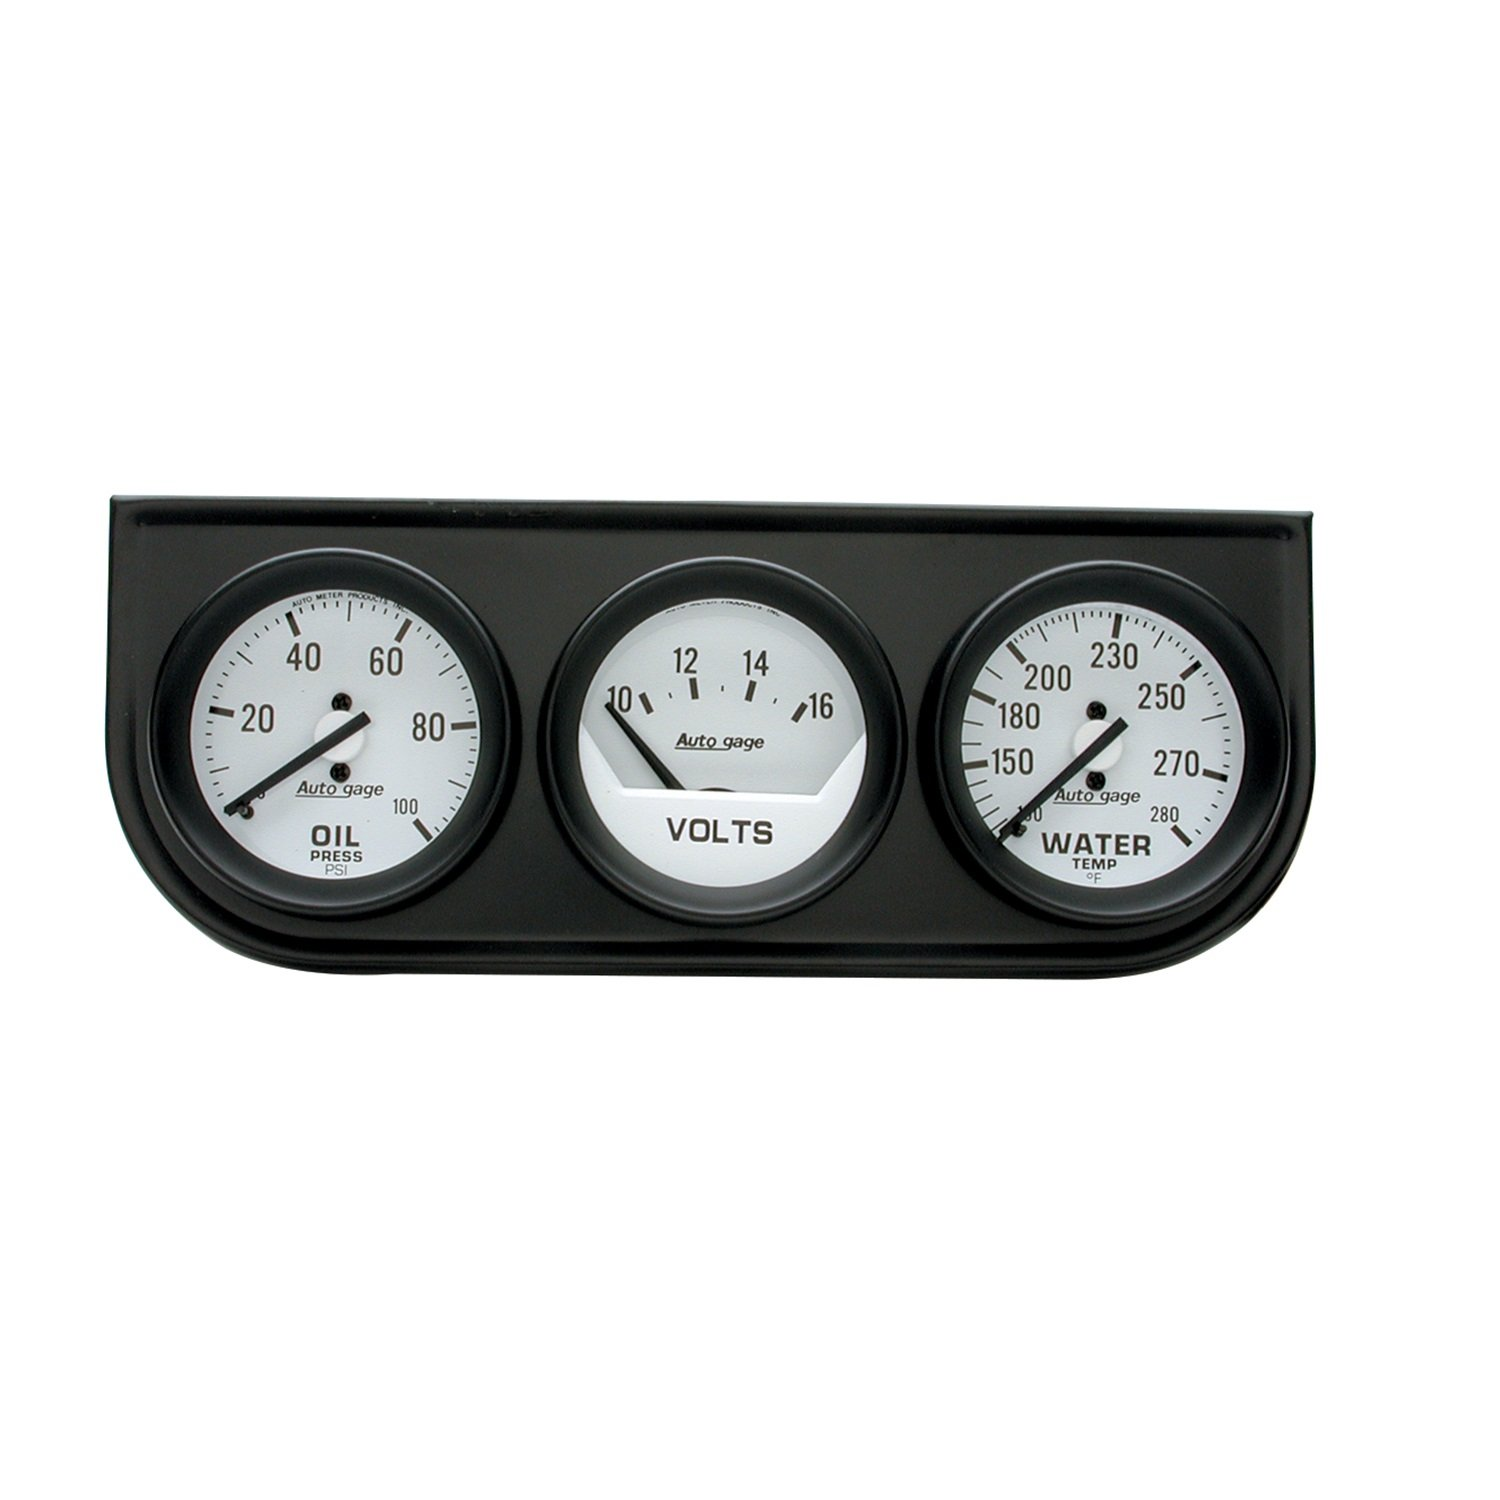 Auto Meter 2327 Auto Gage Black 2-1/16' Mechanical Two-Gauge Console